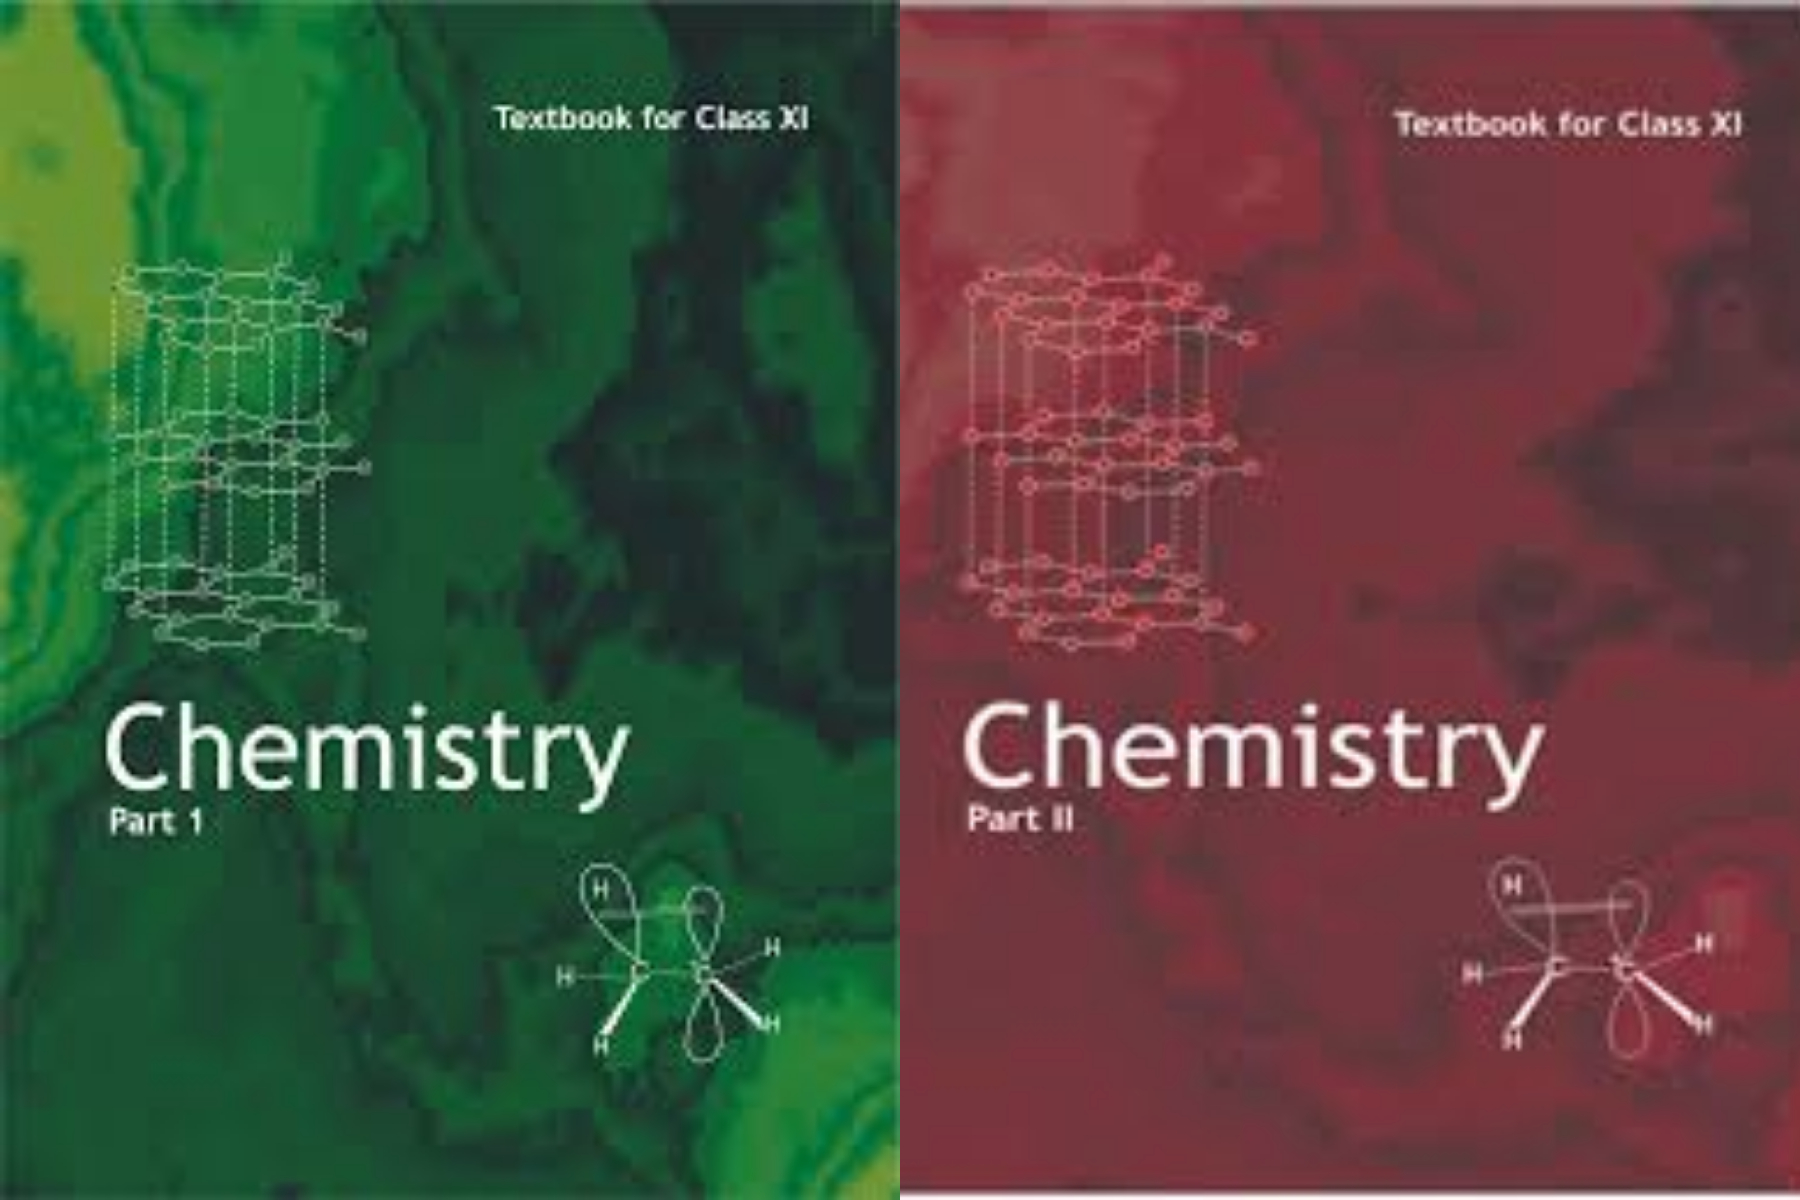 NCERT Chemistry set of 2 books FOR CLASS 11th